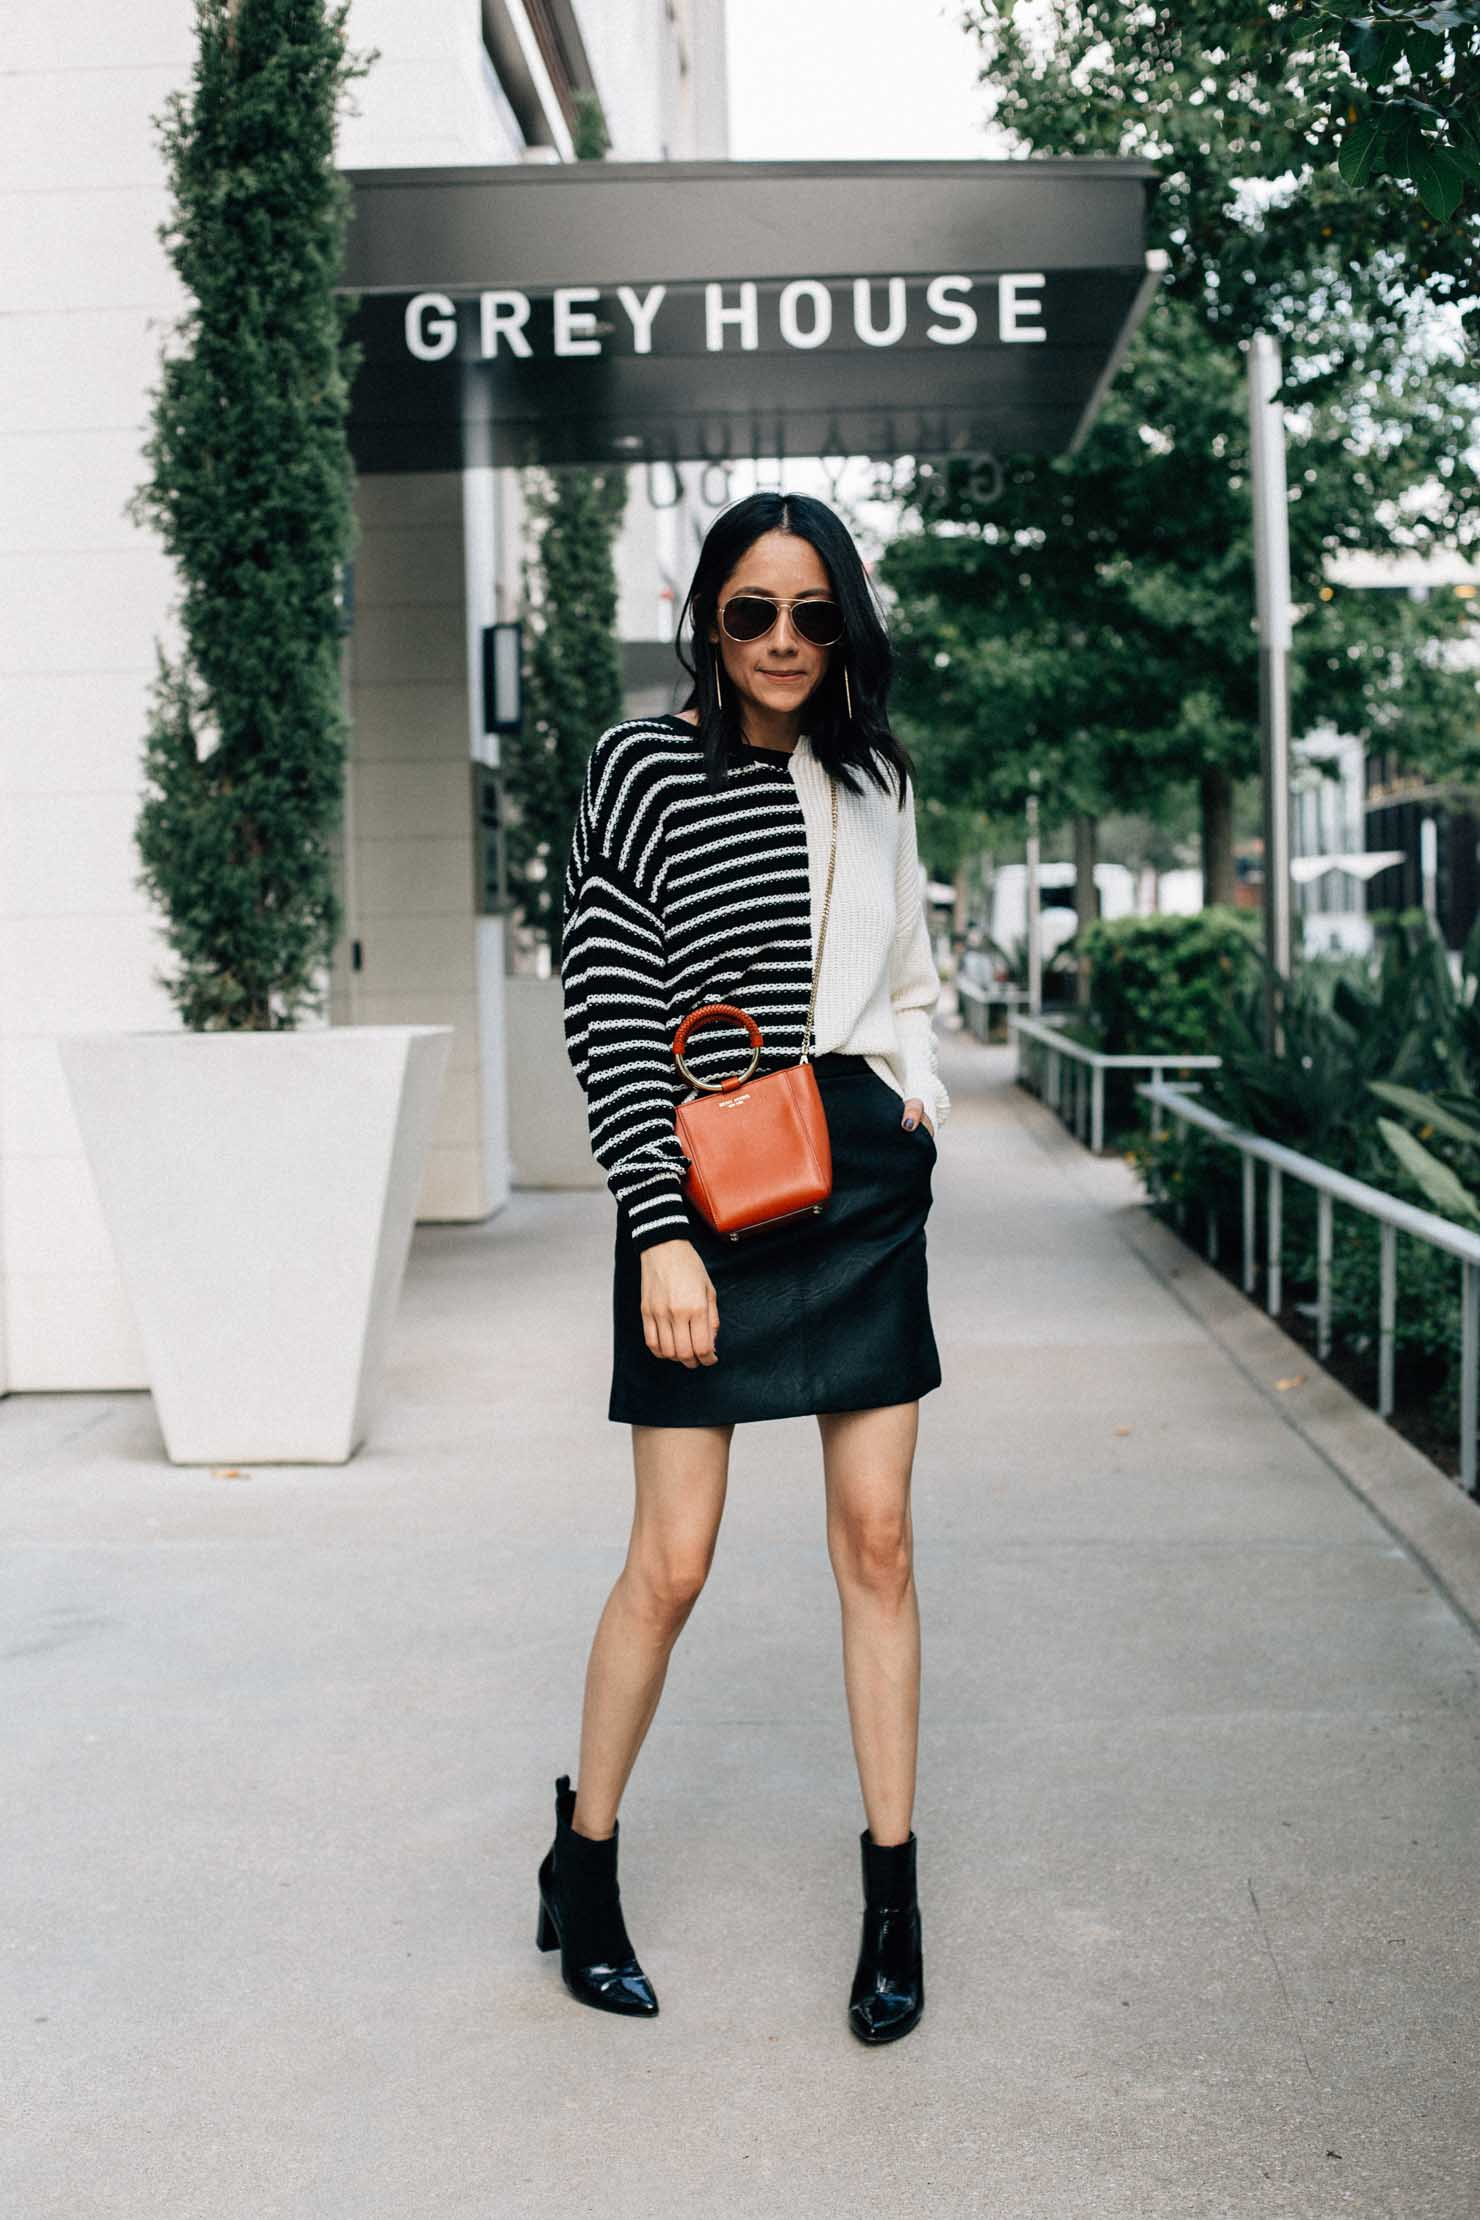 Style blogger Lilly Beltran of Daily Craving in a black leather skirt, oversized striped sweater and black patent leather boots